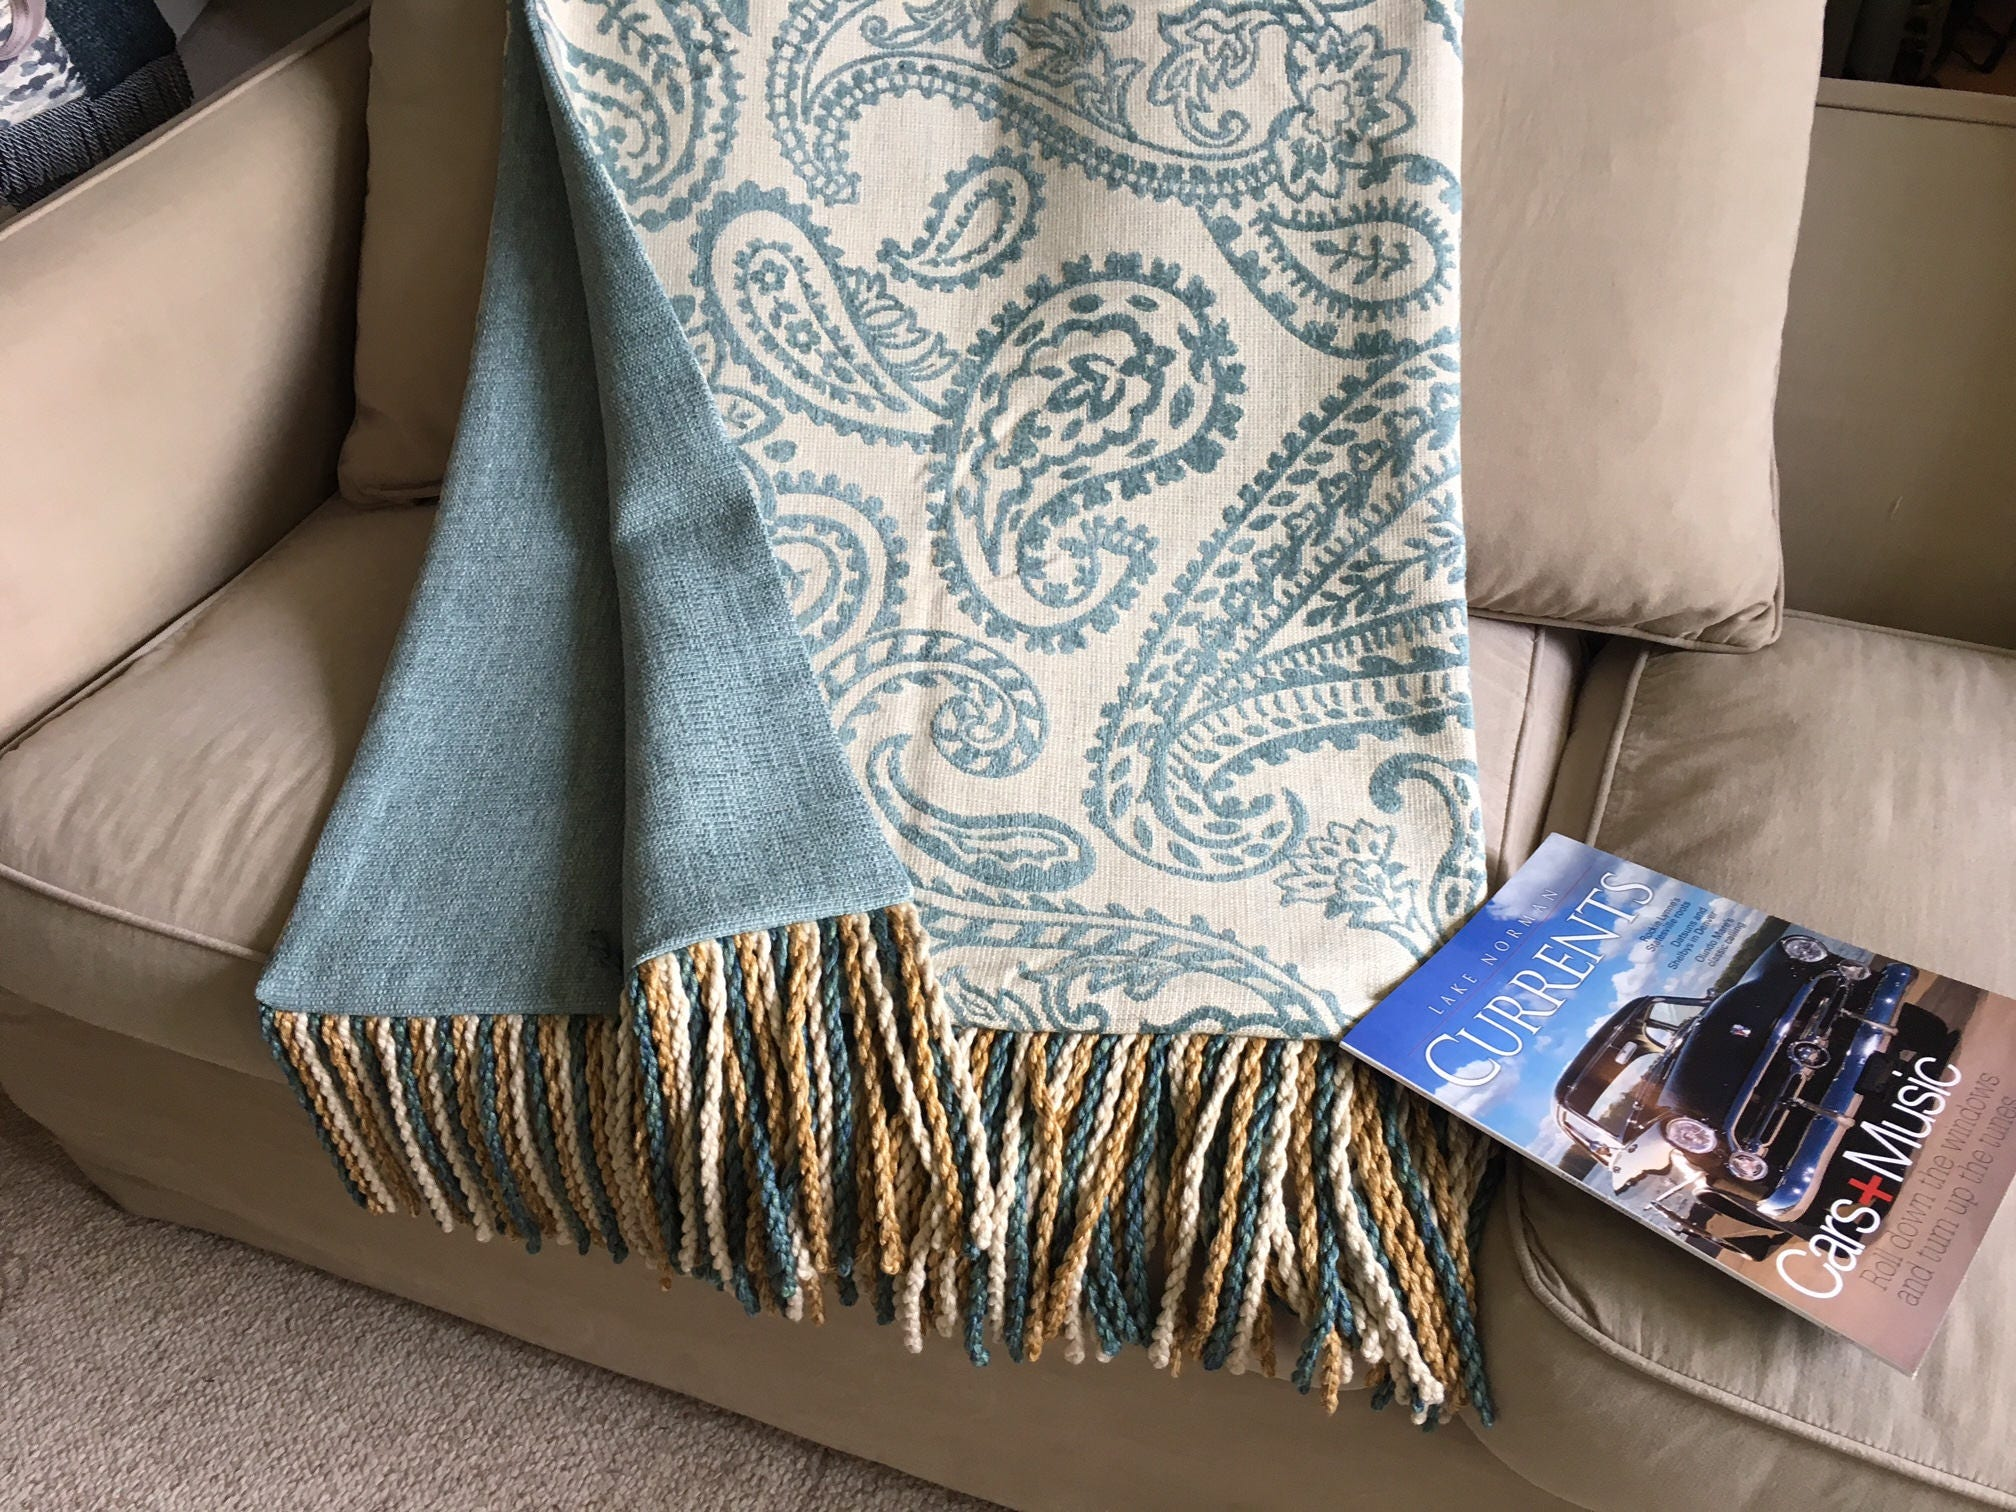 Blue Paisley Throw Blanket Turquoise Bedding Sofa Cover